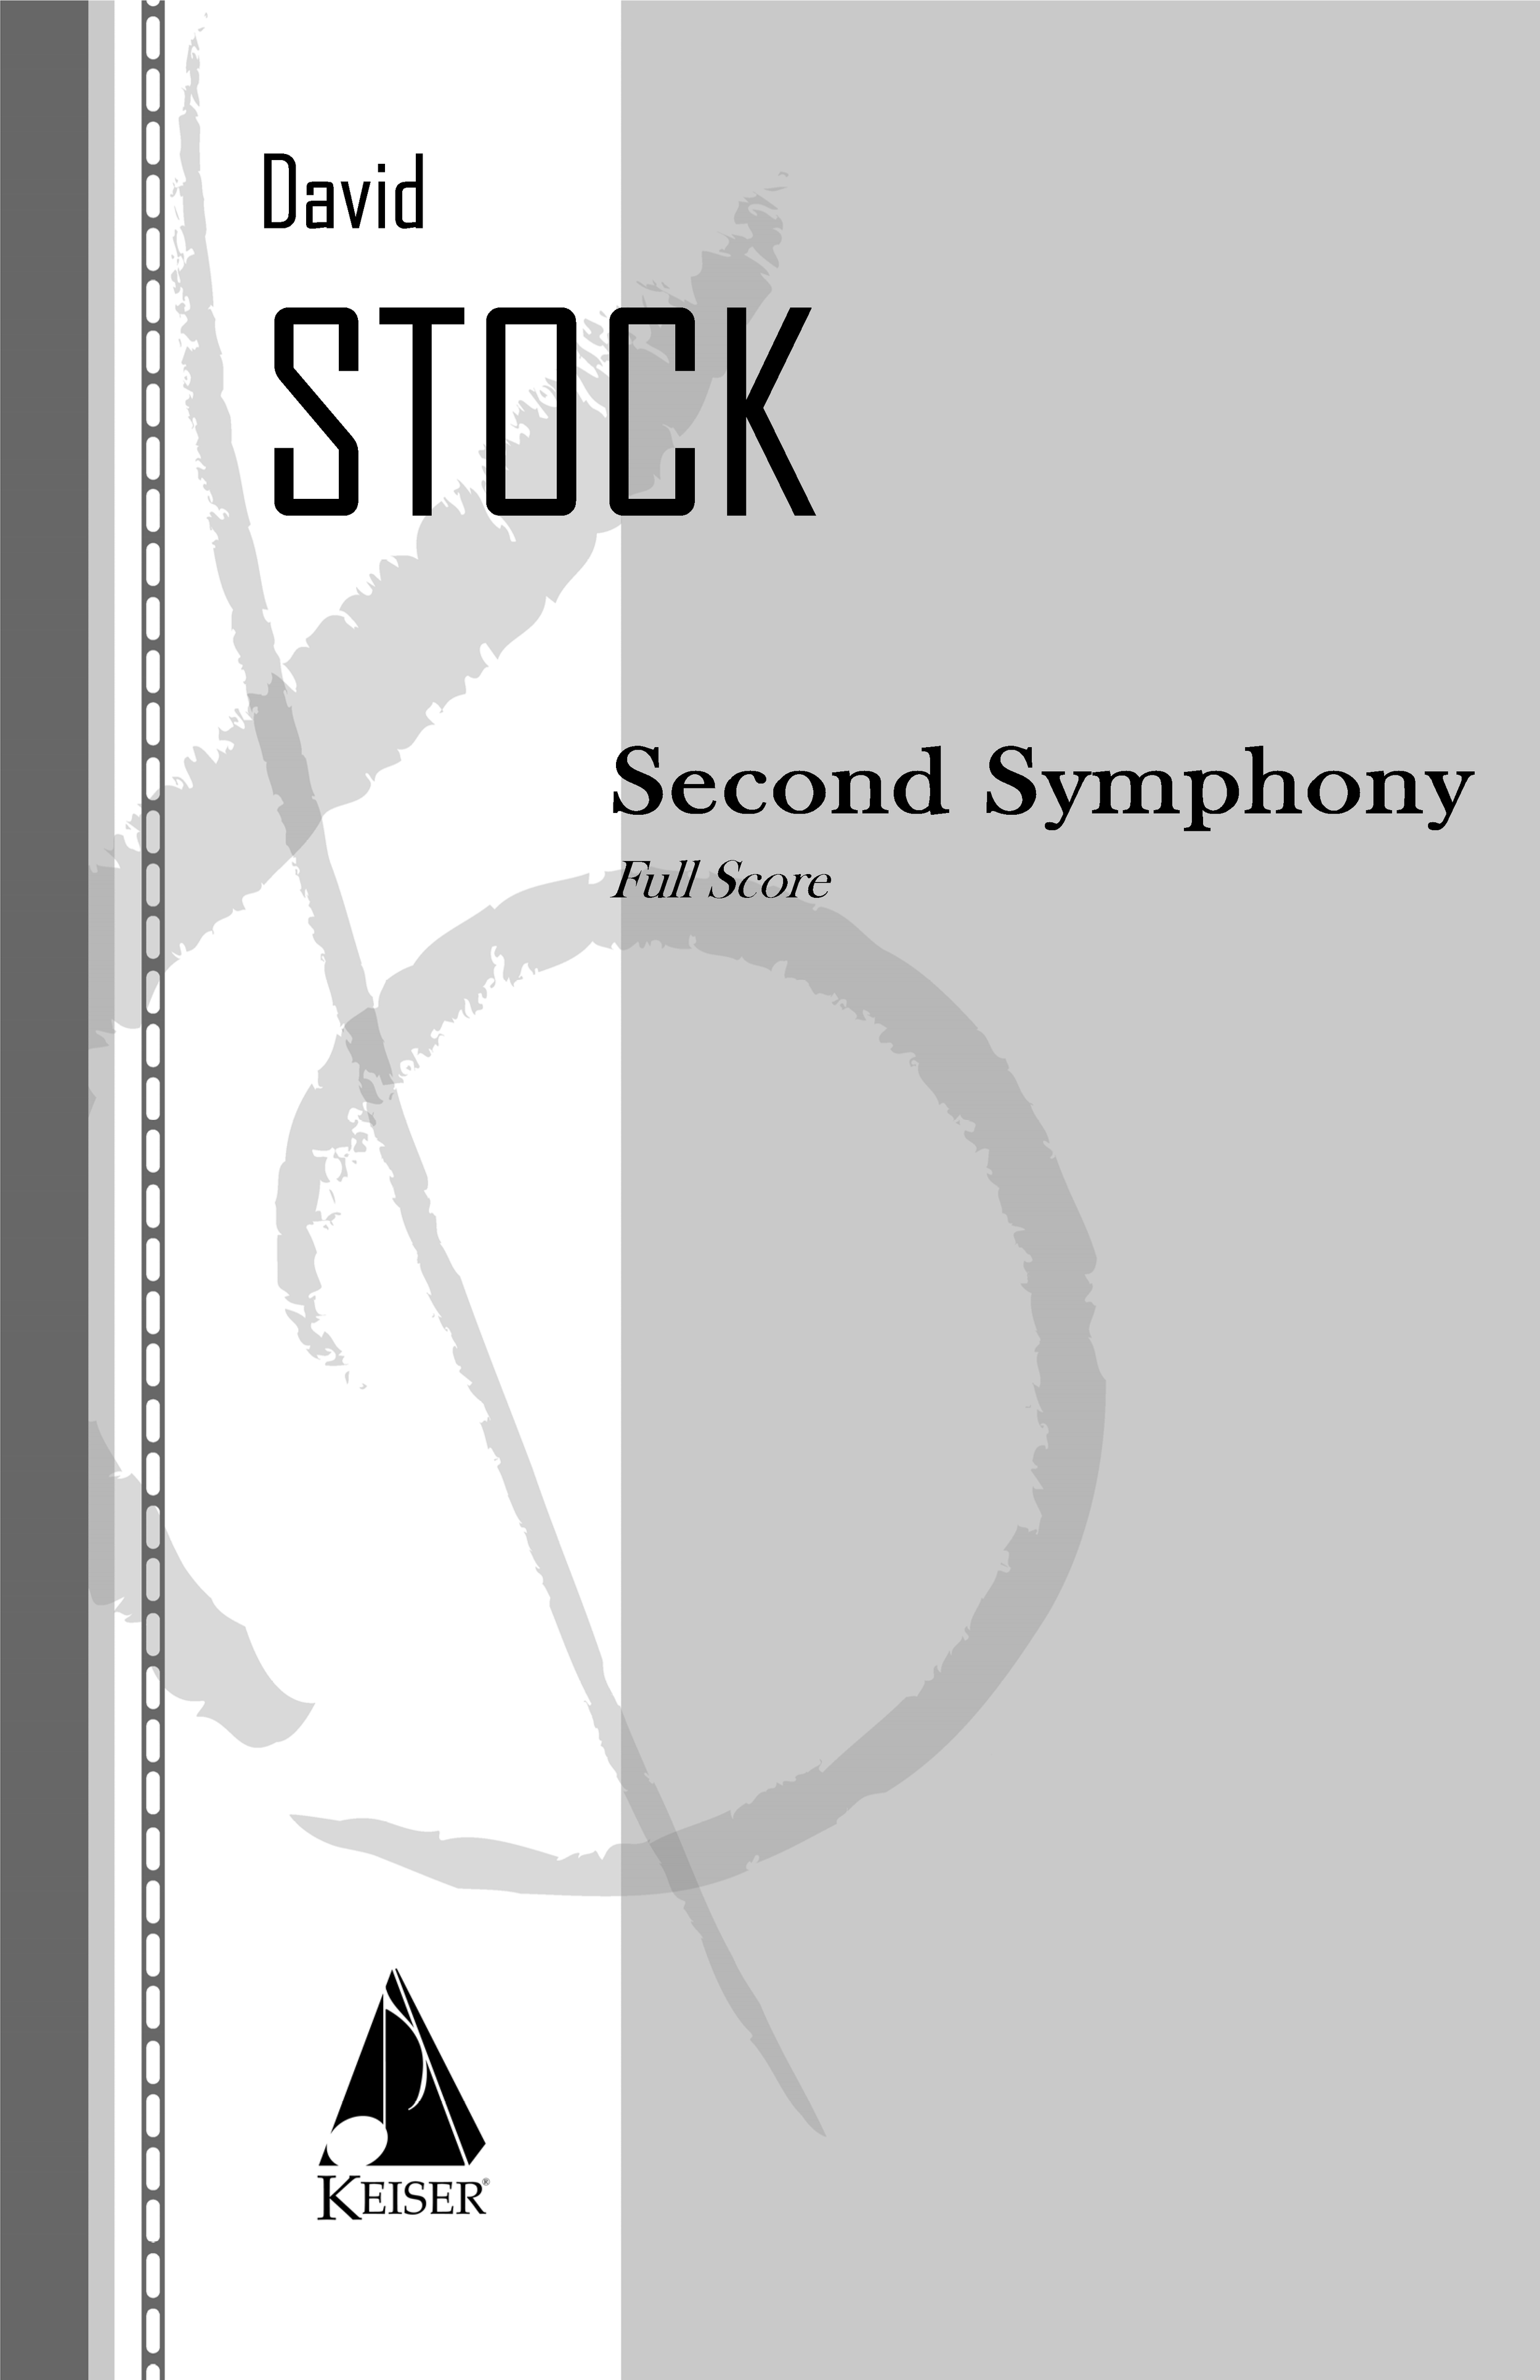 Second Symphony (1996) - 3(1d Picc).3(1d EH).3(1d BCl).2+Cbsn: 4.4.3.1: Timp.Perc(4).Hp: StrRent/Buy: Keiser Music WATCH: Mvt. I Seattle SymphonyWATCH: Mvt. II Seattle SymphonyWATCH: Mvt. III Seattle Symphony